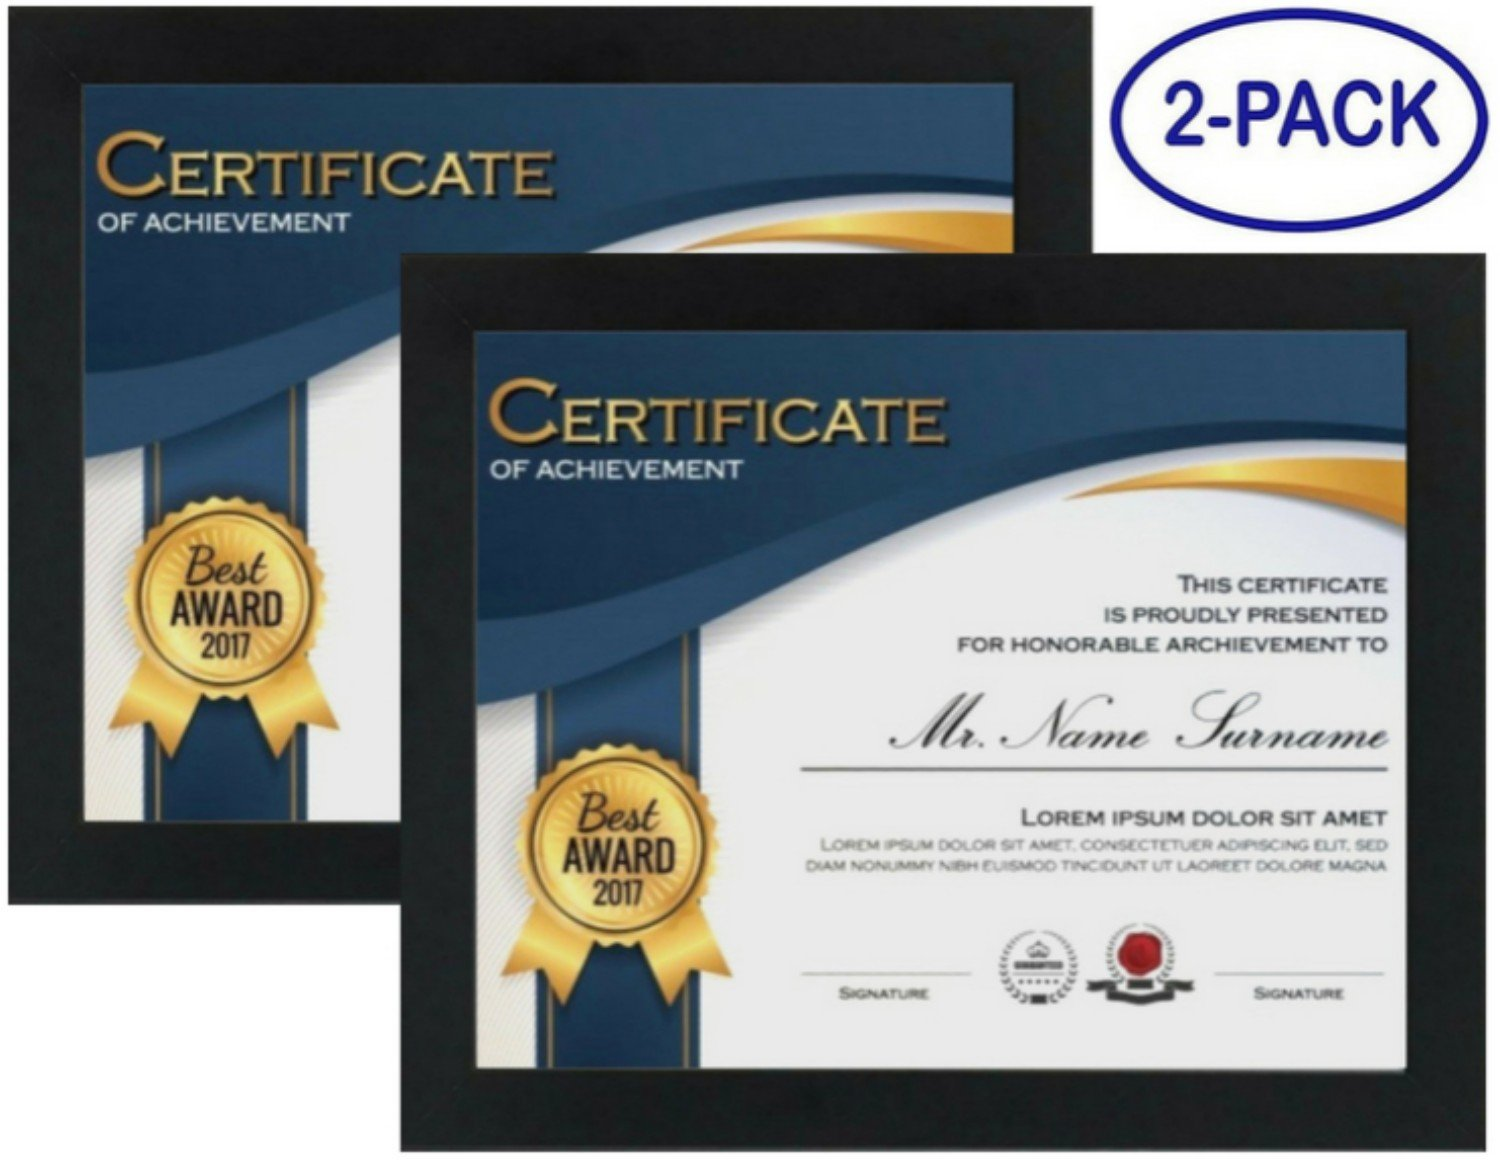 Certificate Frames (2-Pack) - Made to Display Documents 8.5x11 Inch - Wood - REAL GLASS FRONT - Hang Vertically or Horizontally - Certificate Frames 8.5 x 11 Multi-Pack Degree Award Standard Paper